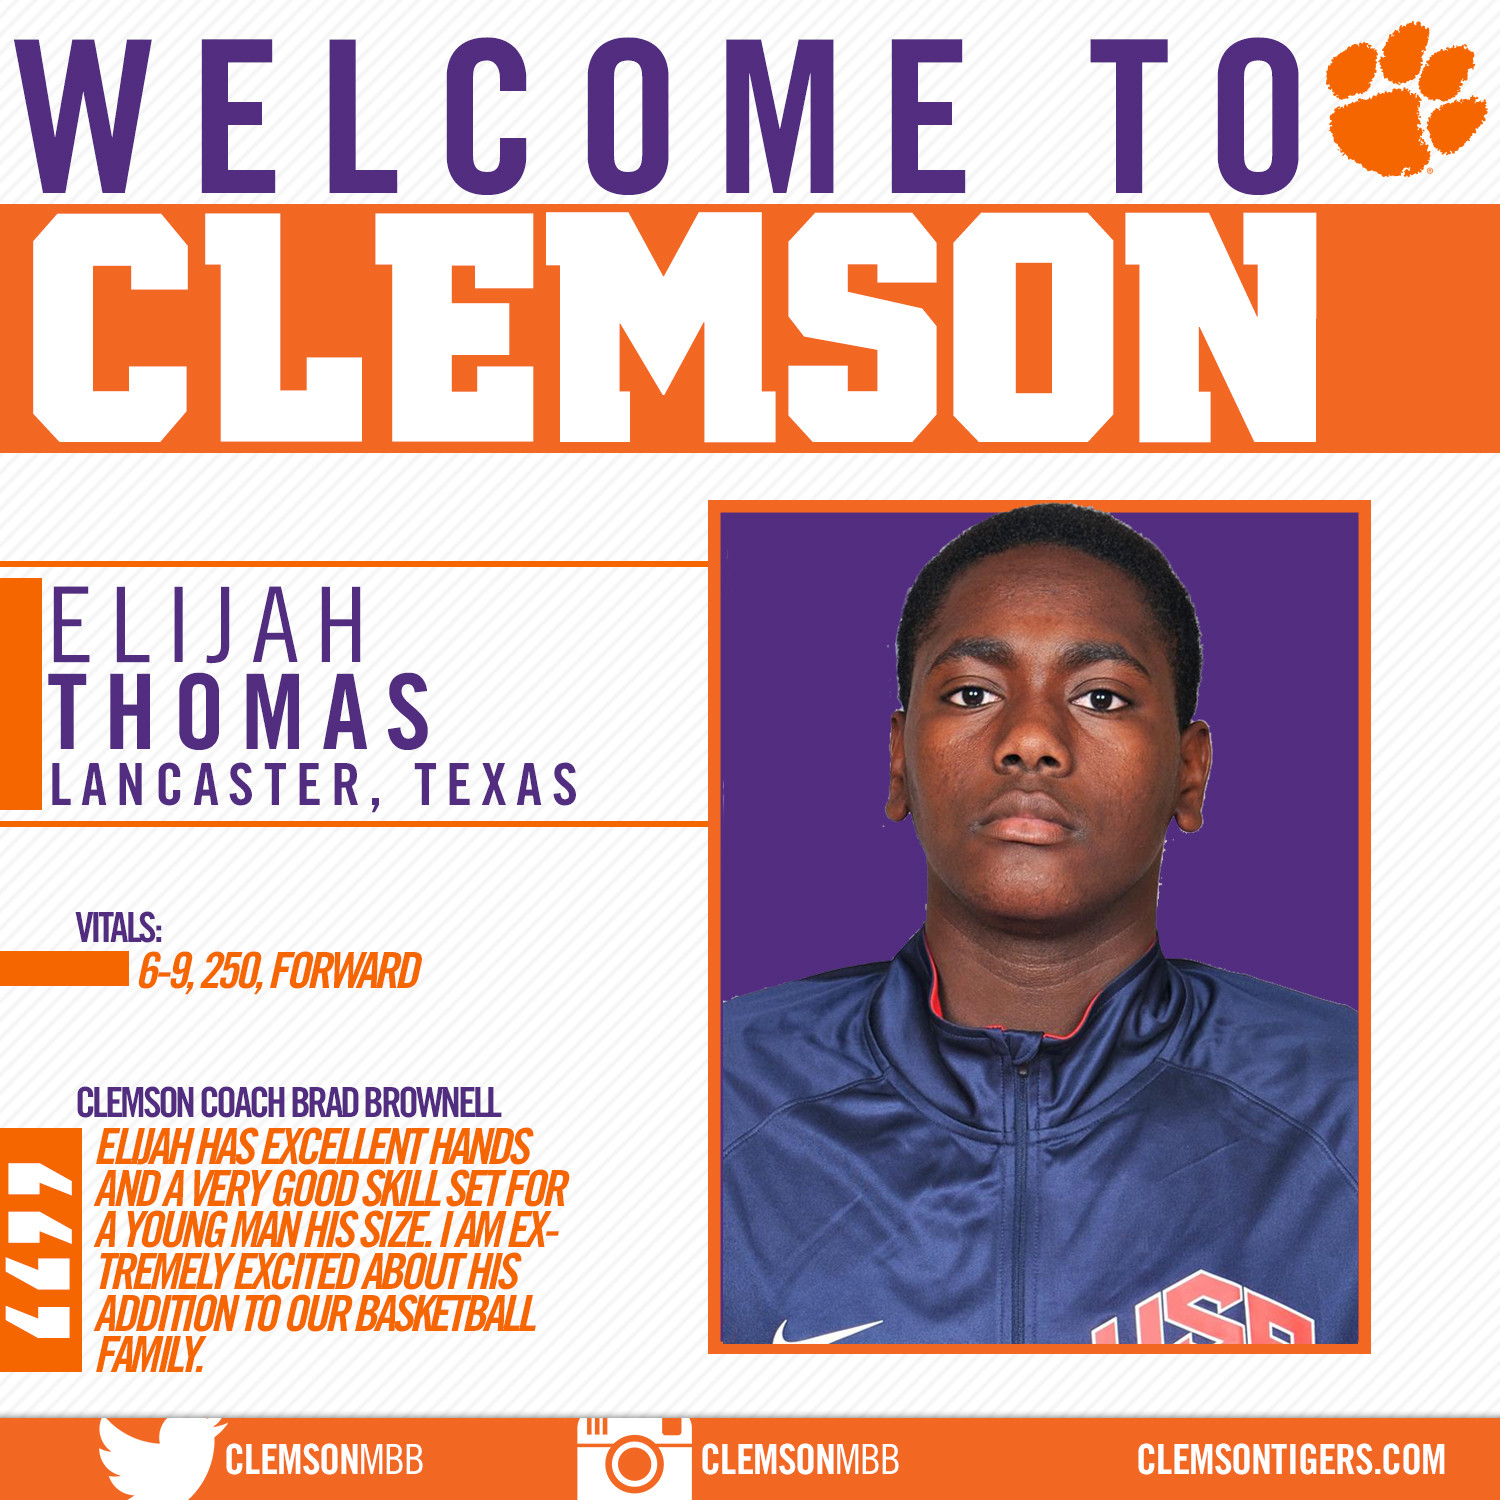 Tigers Add Elijah Thomas